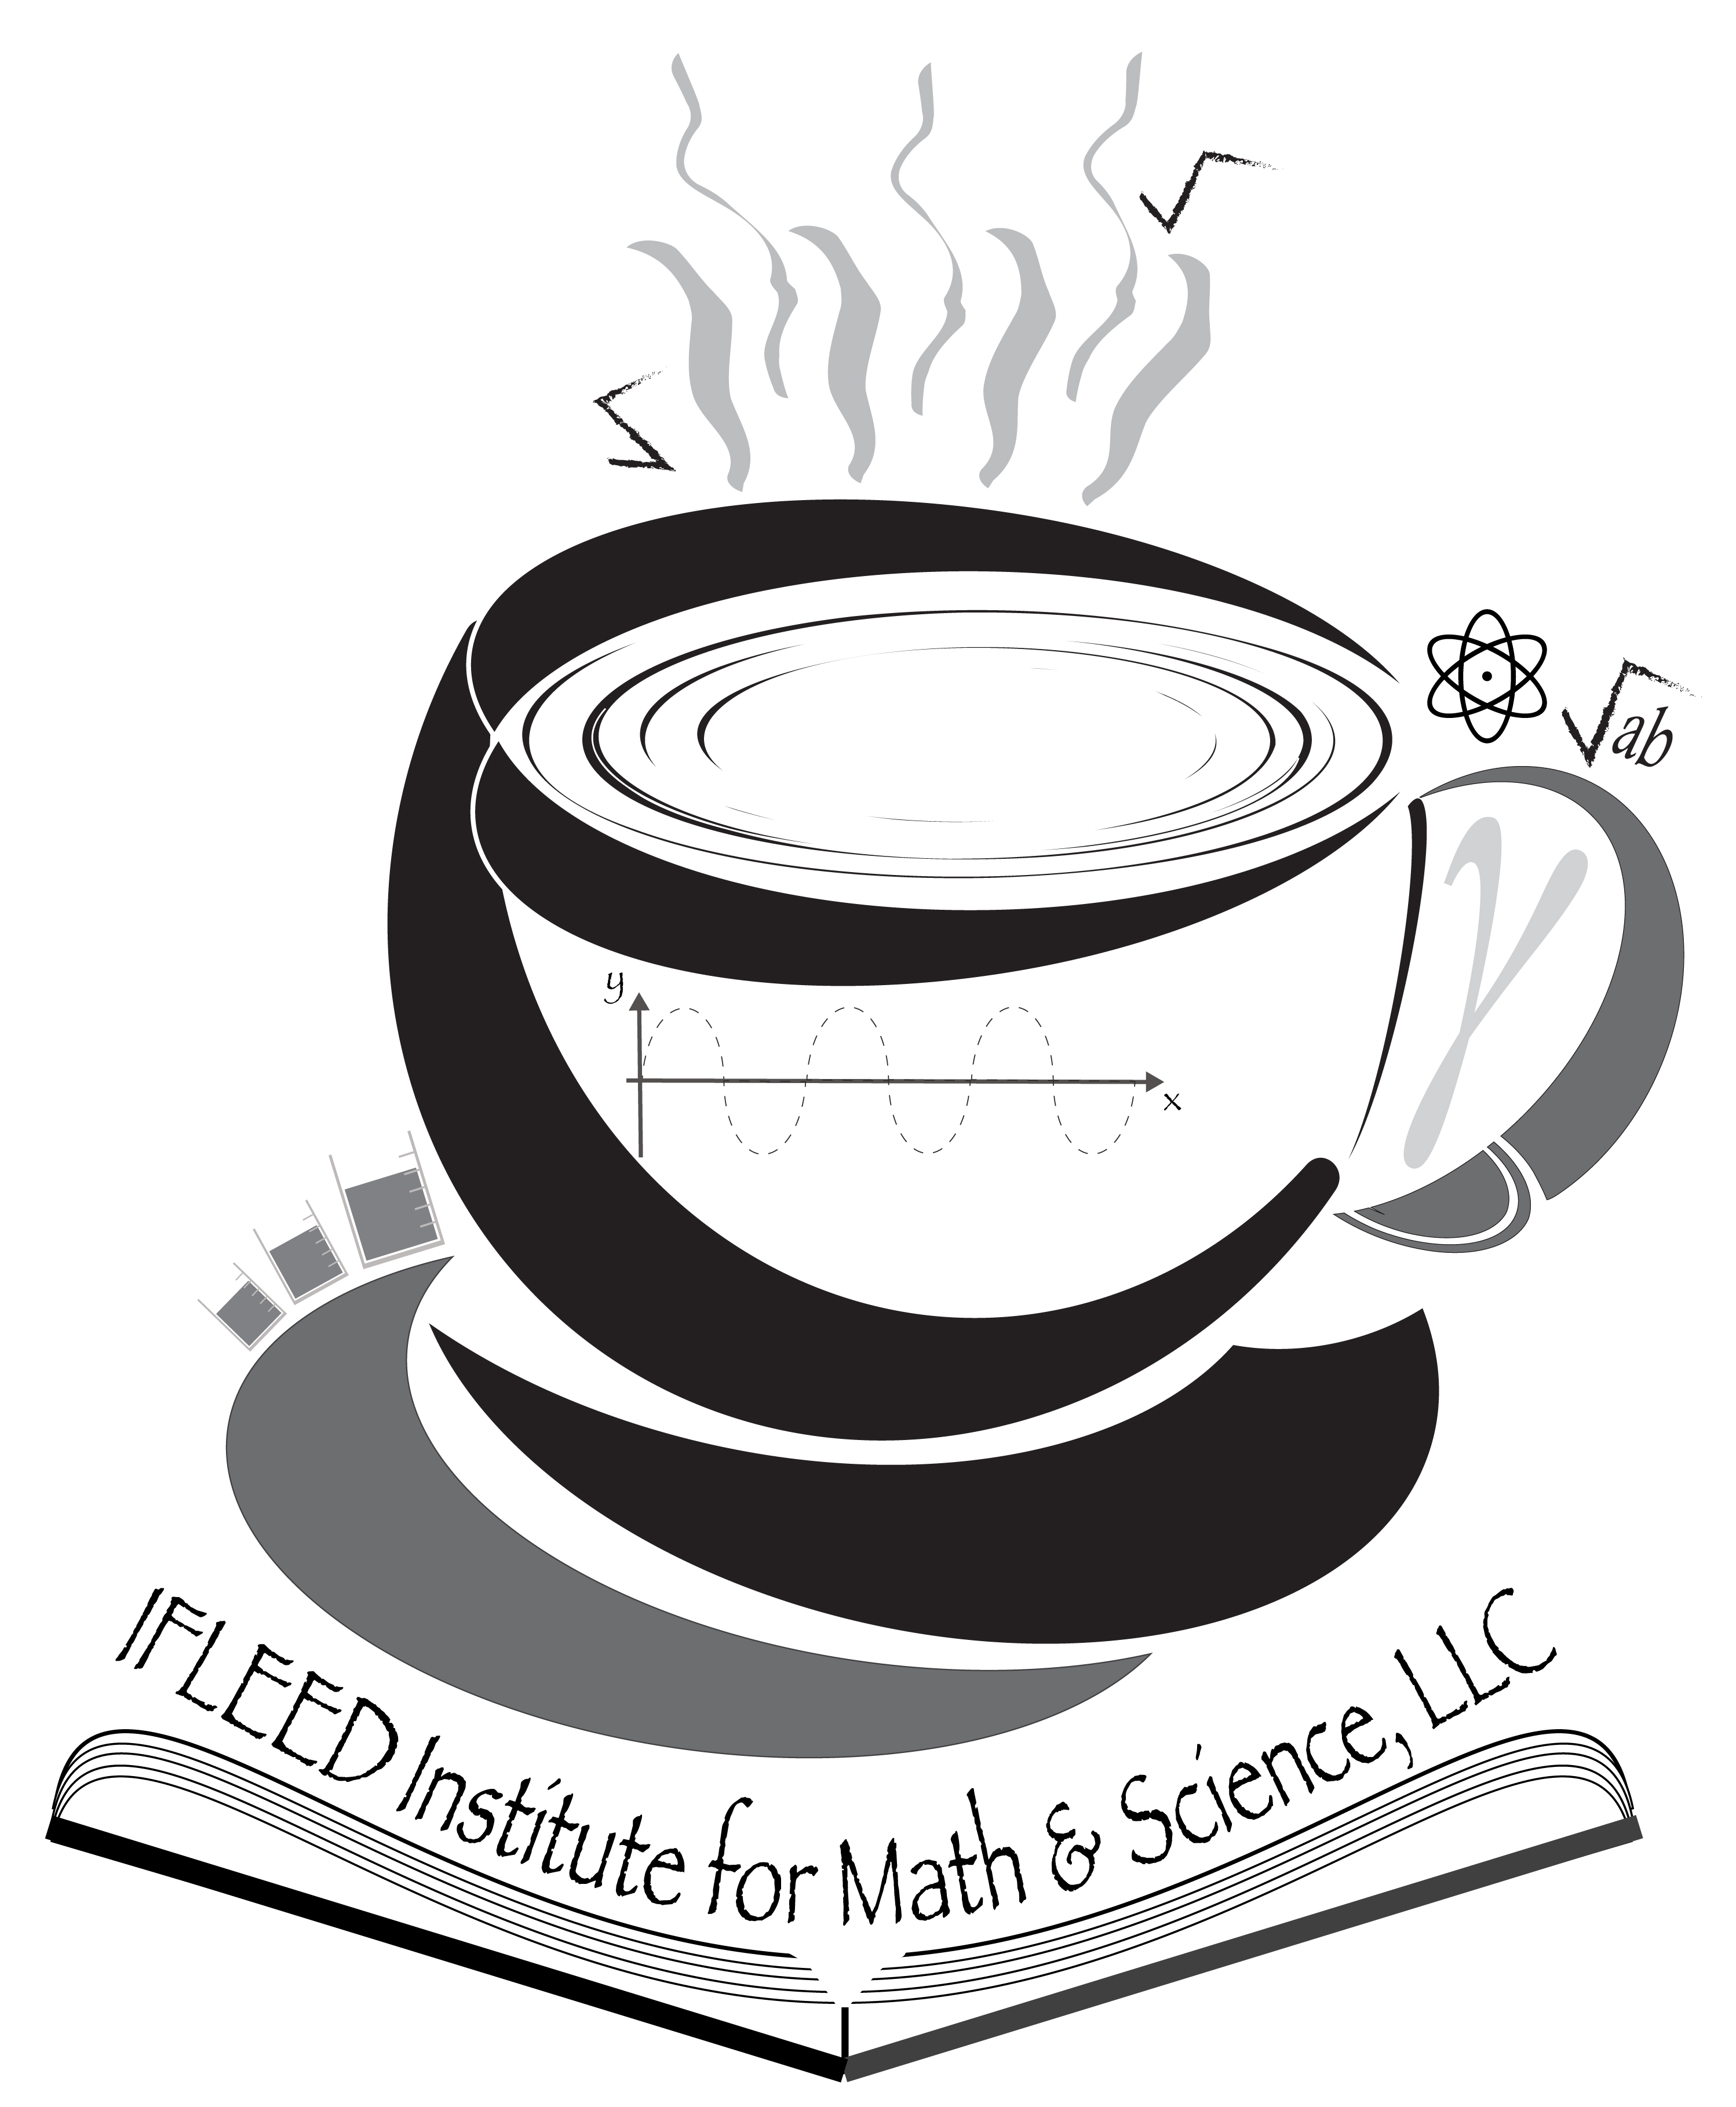 IFLEED Institute of Math and Science